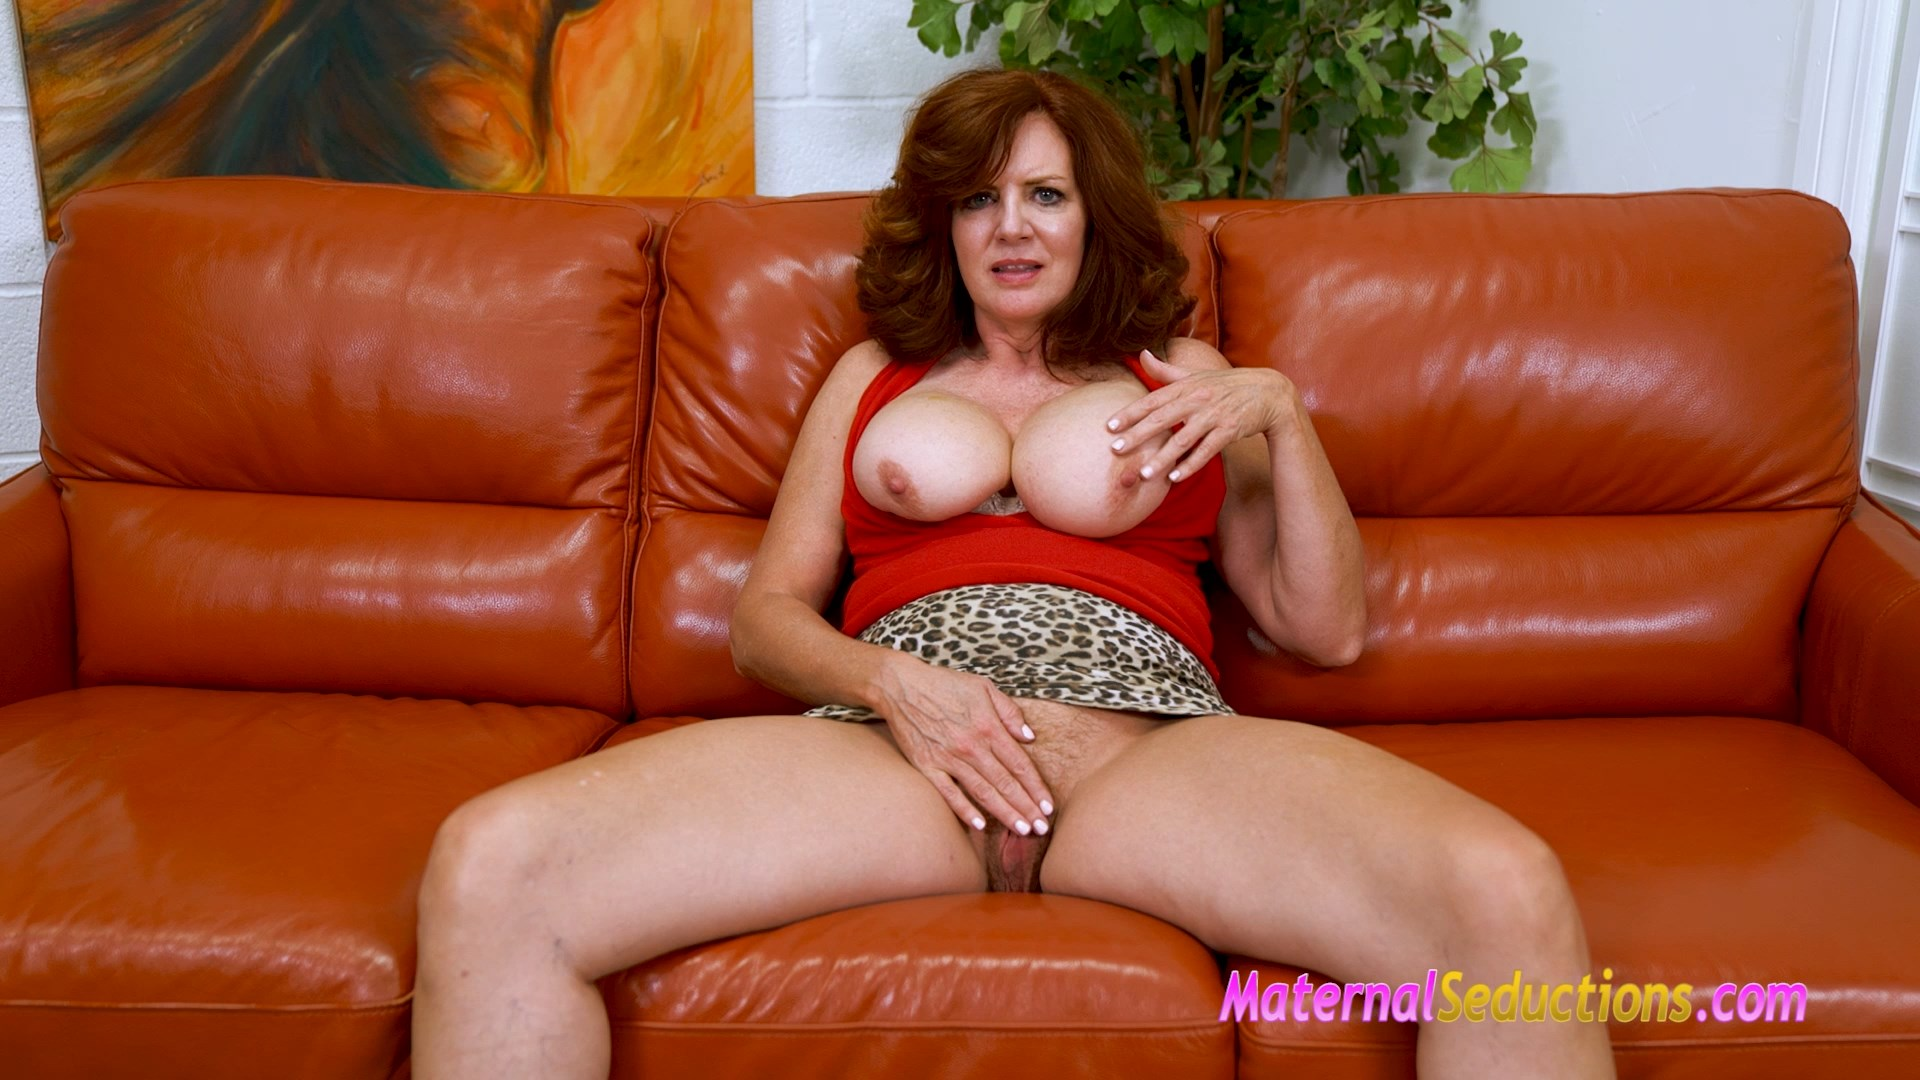 Mom Says Show Me Your Cock - Andi James